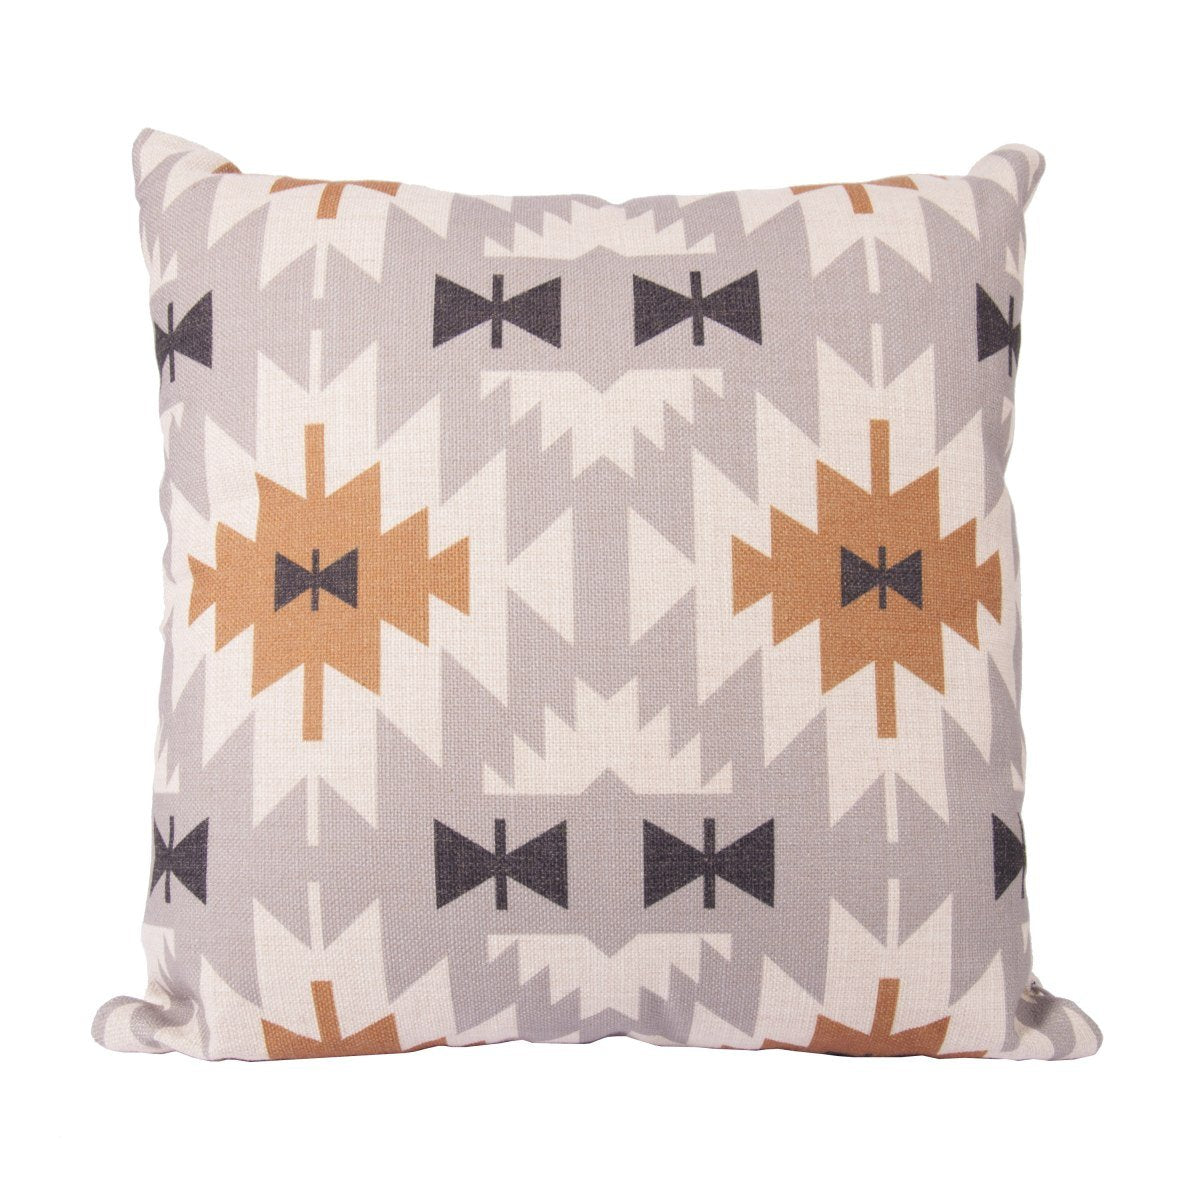 Gia Cushion Cover-fliphome.com.au